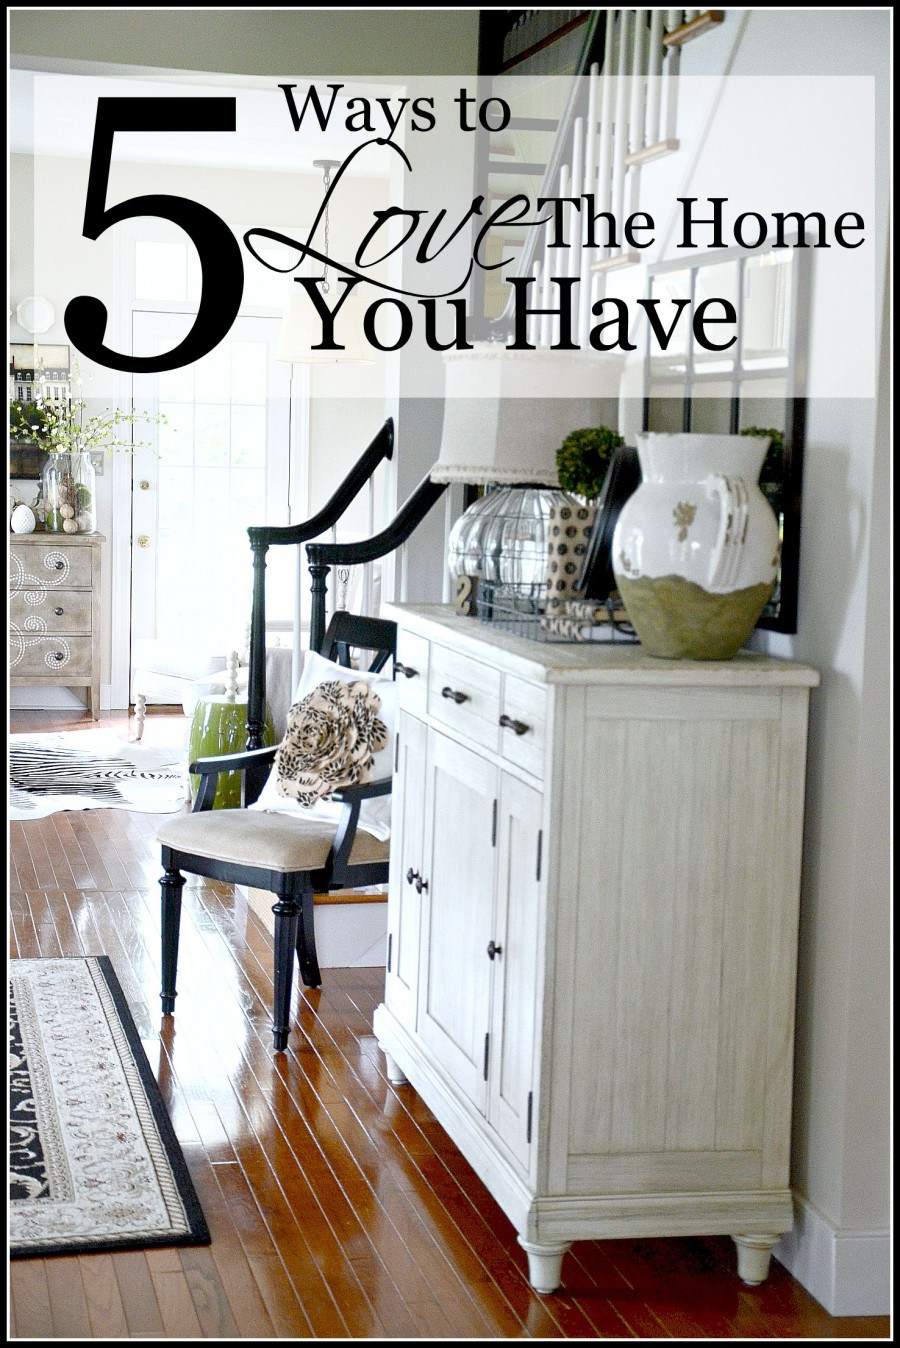 5 WAYS TO LOVE THE HOME YOU HAVE!